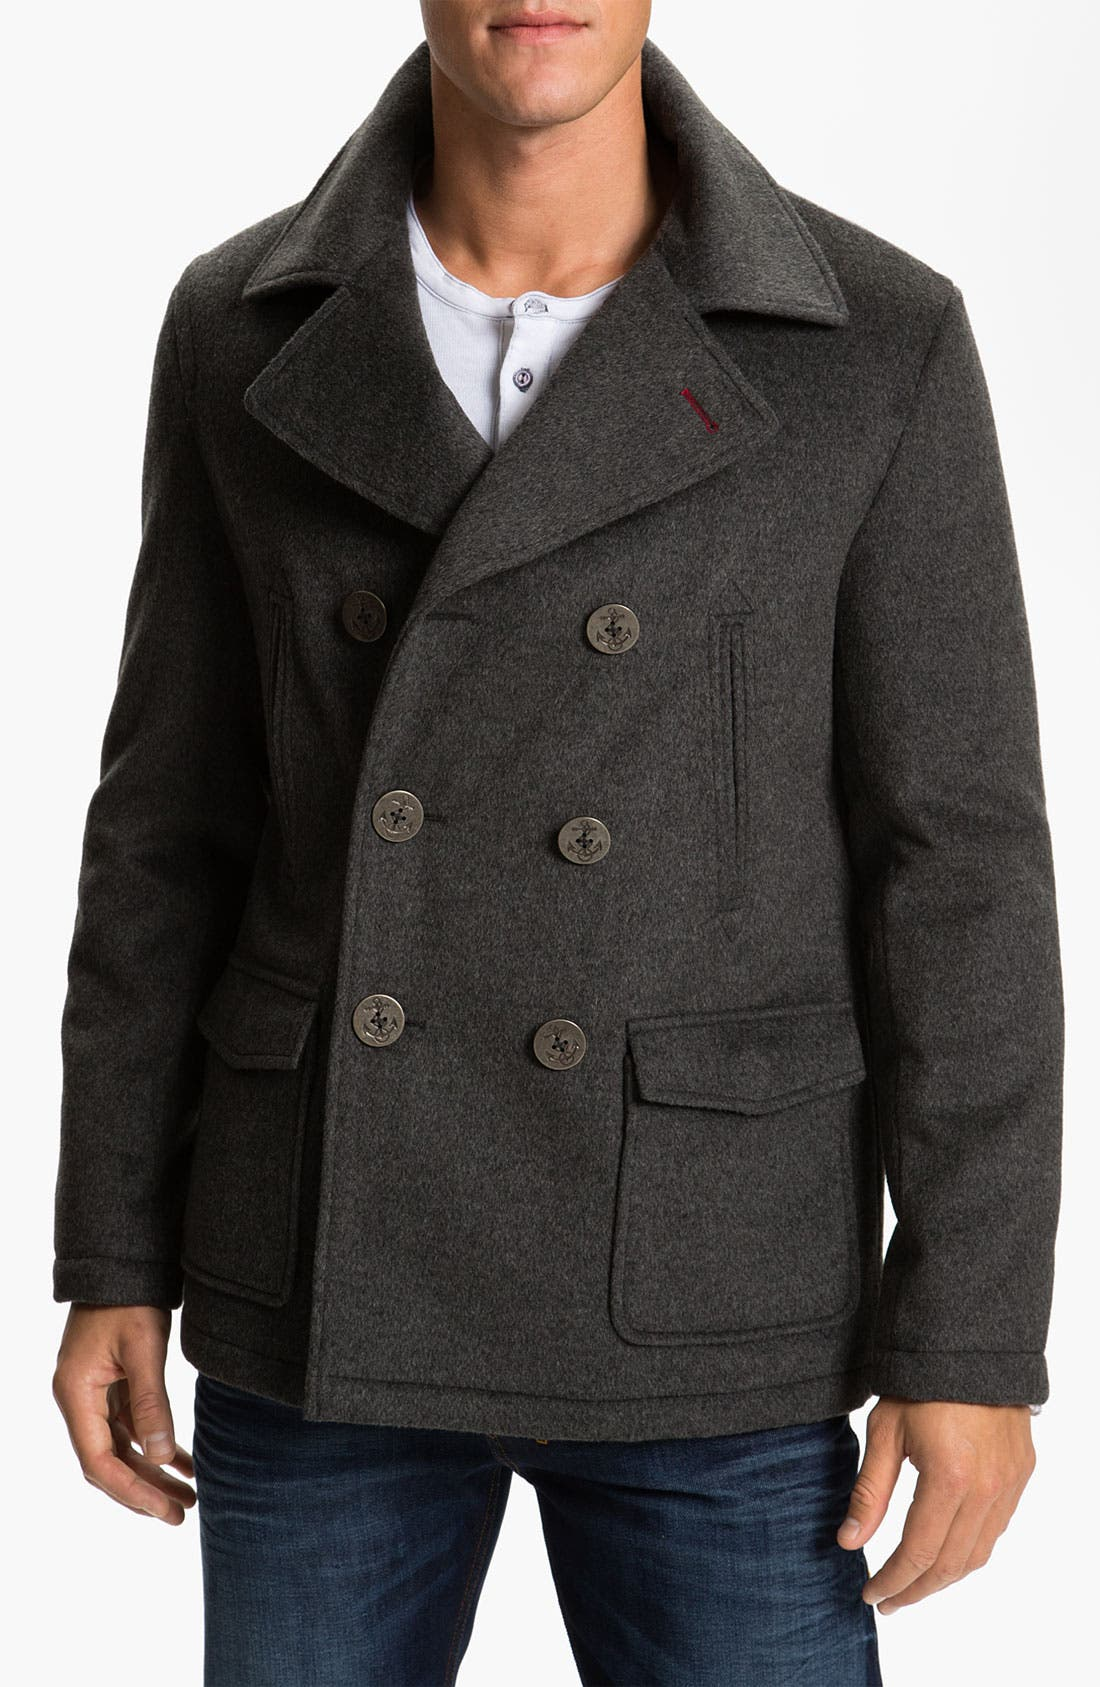 Alternate Image 1 Selected - 1901 Wool Blend Peacoat